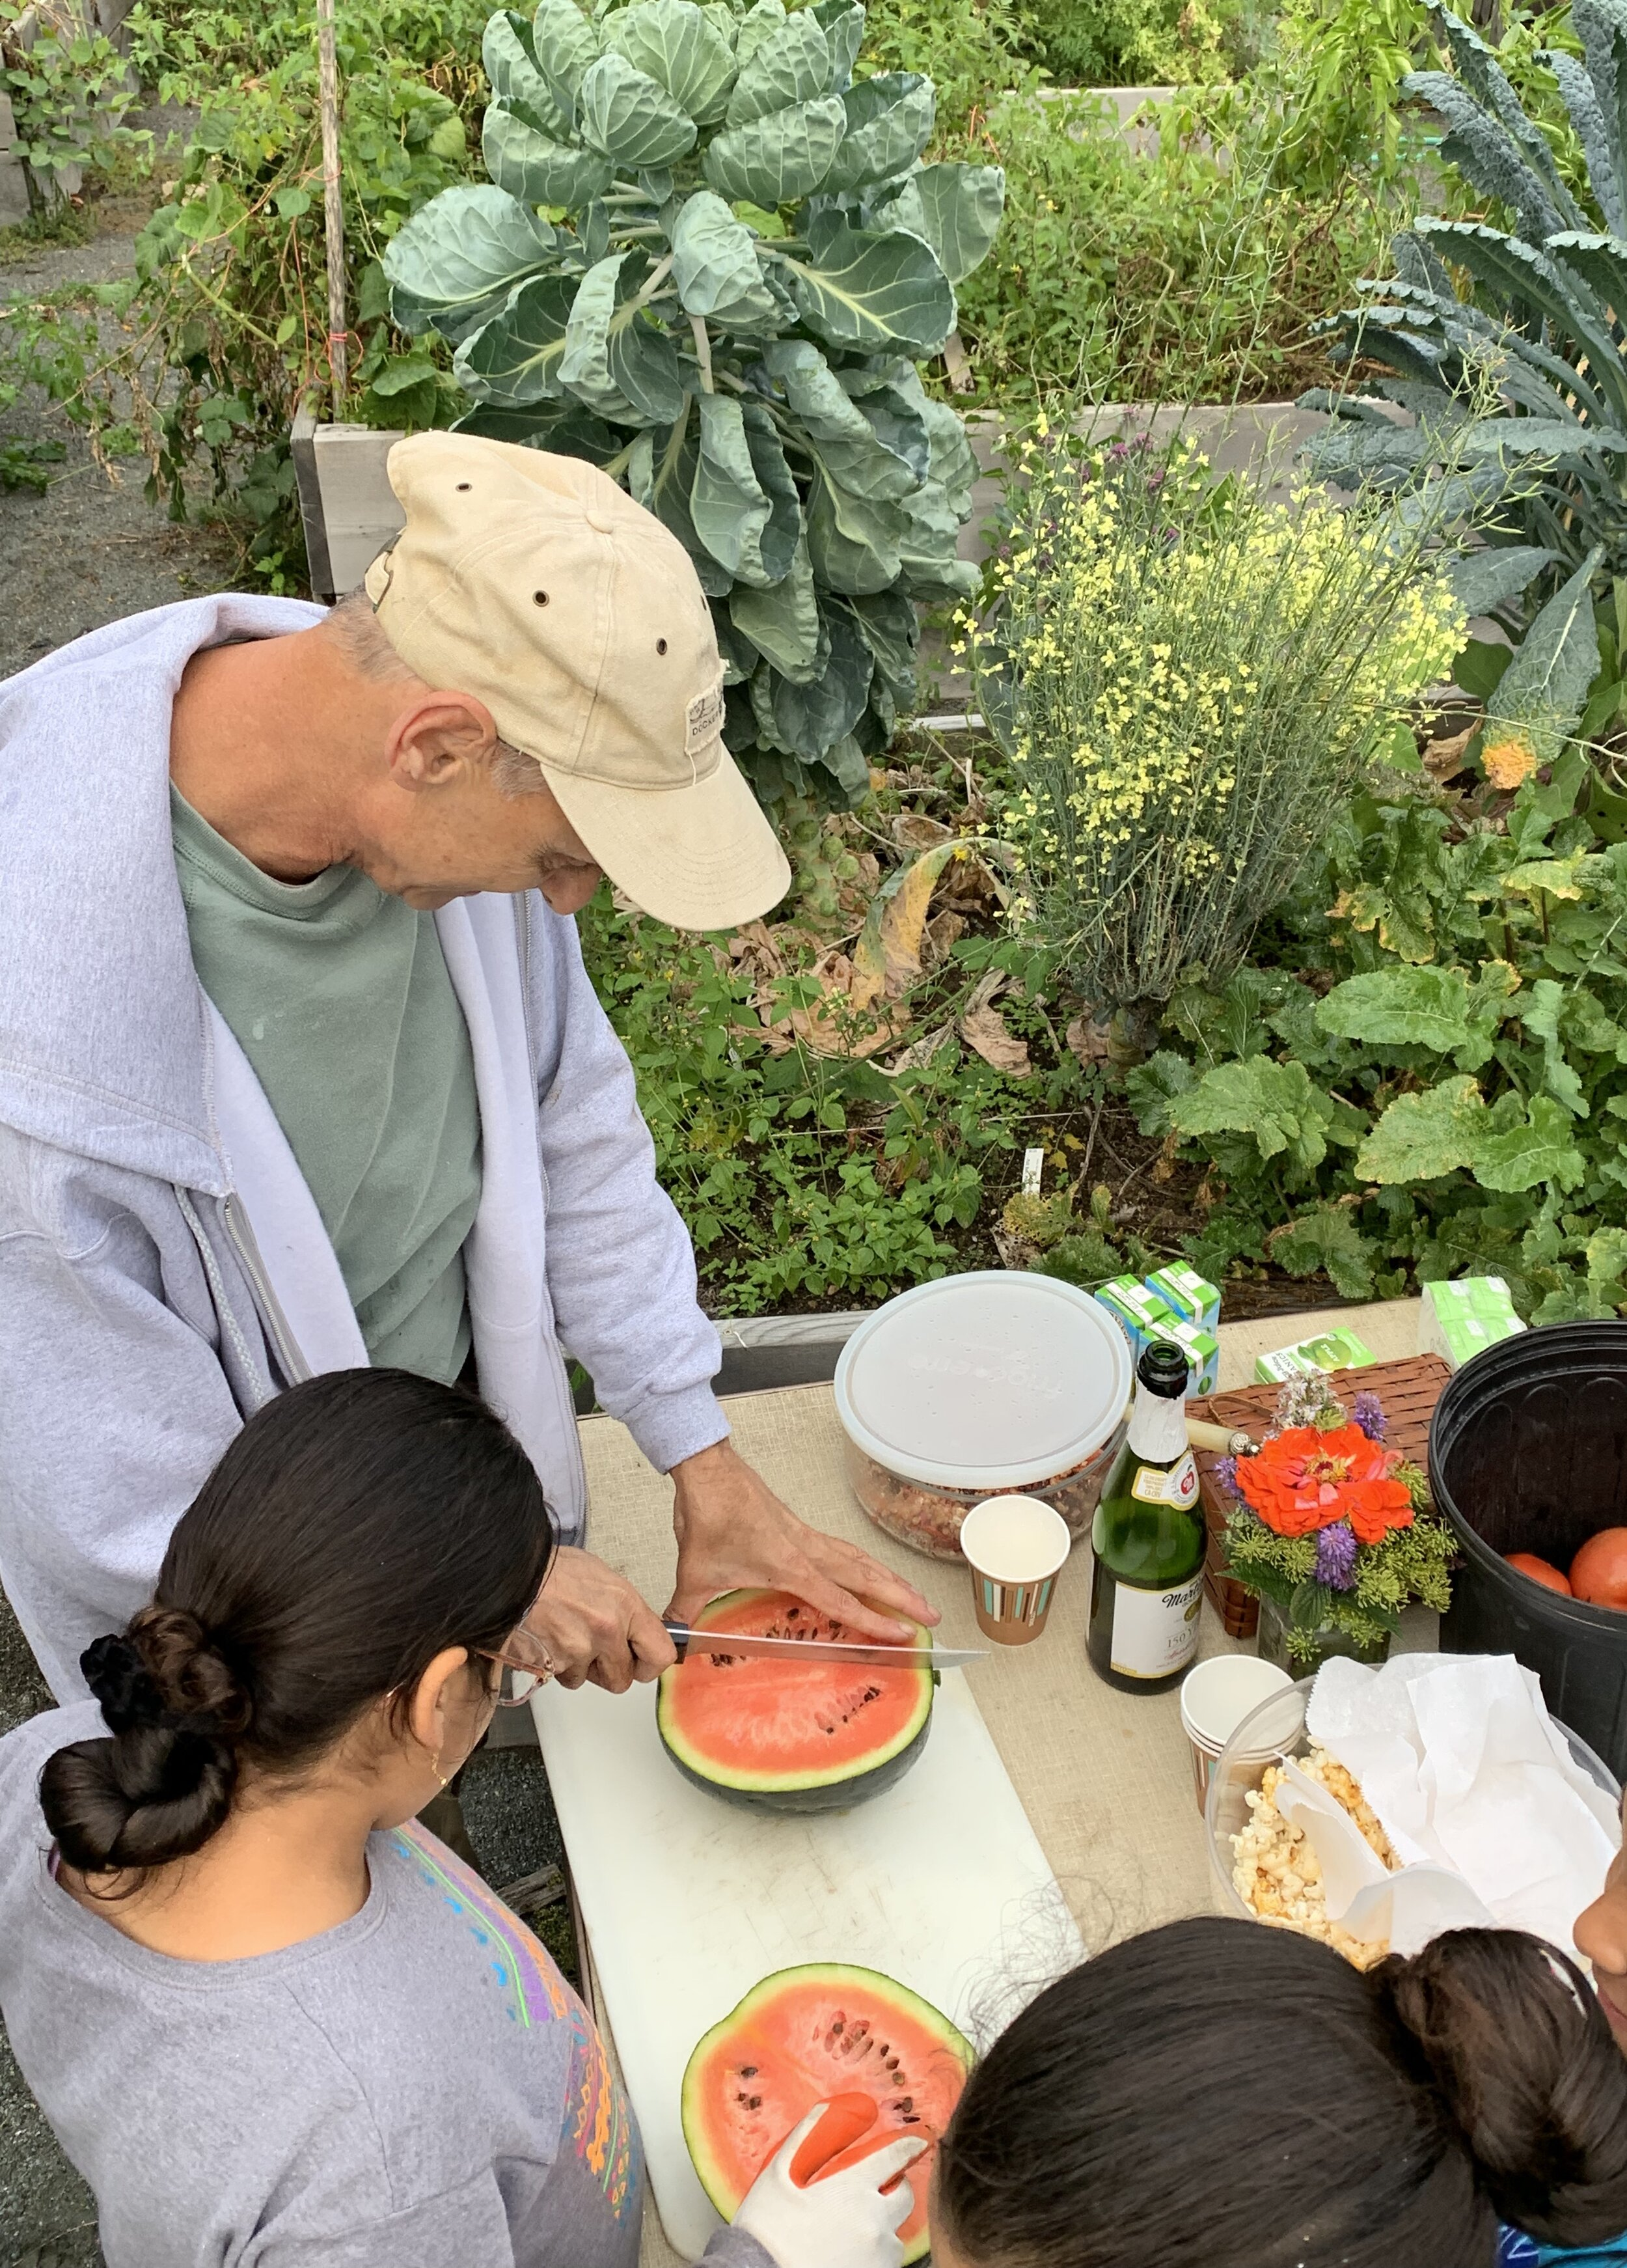 Peter DeNigris cuts freshly harvested watermelon with gardeners at Willowood Community Garden.